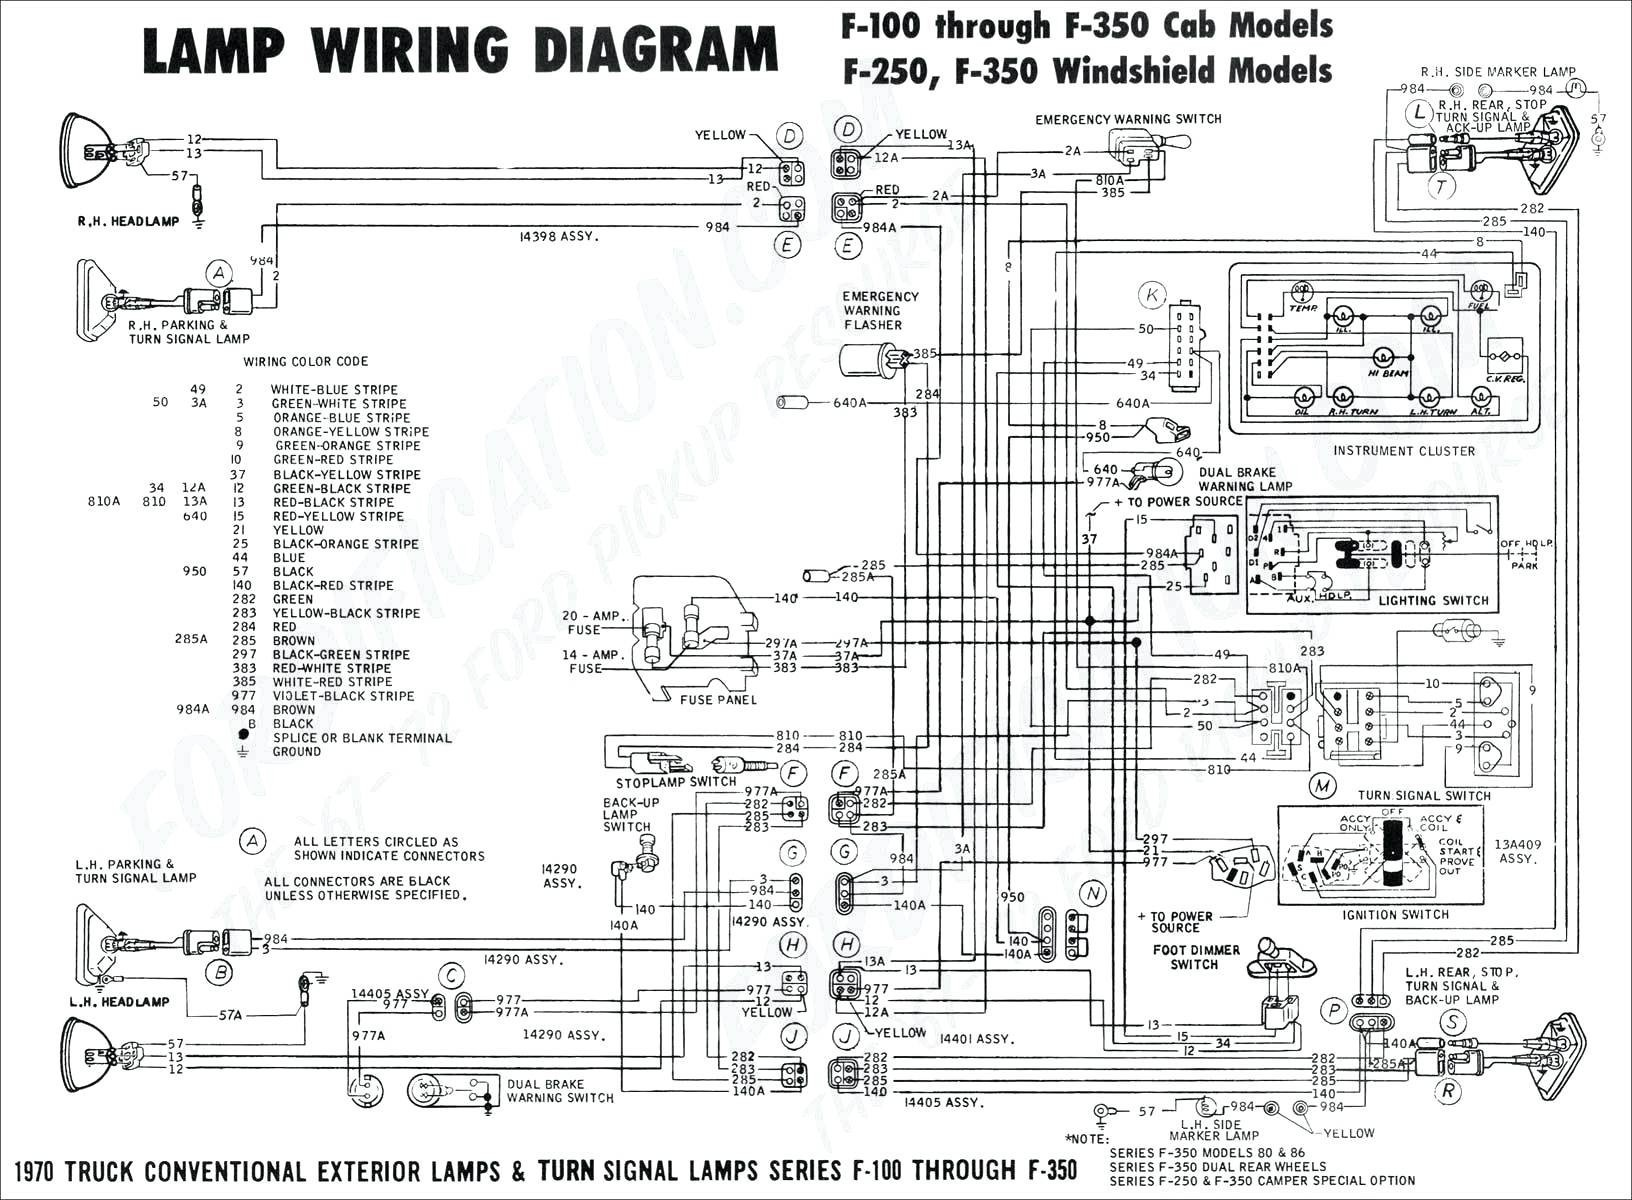 Circuit Electric For Guide: 2007 Kenworth W900 Wiring Diagram